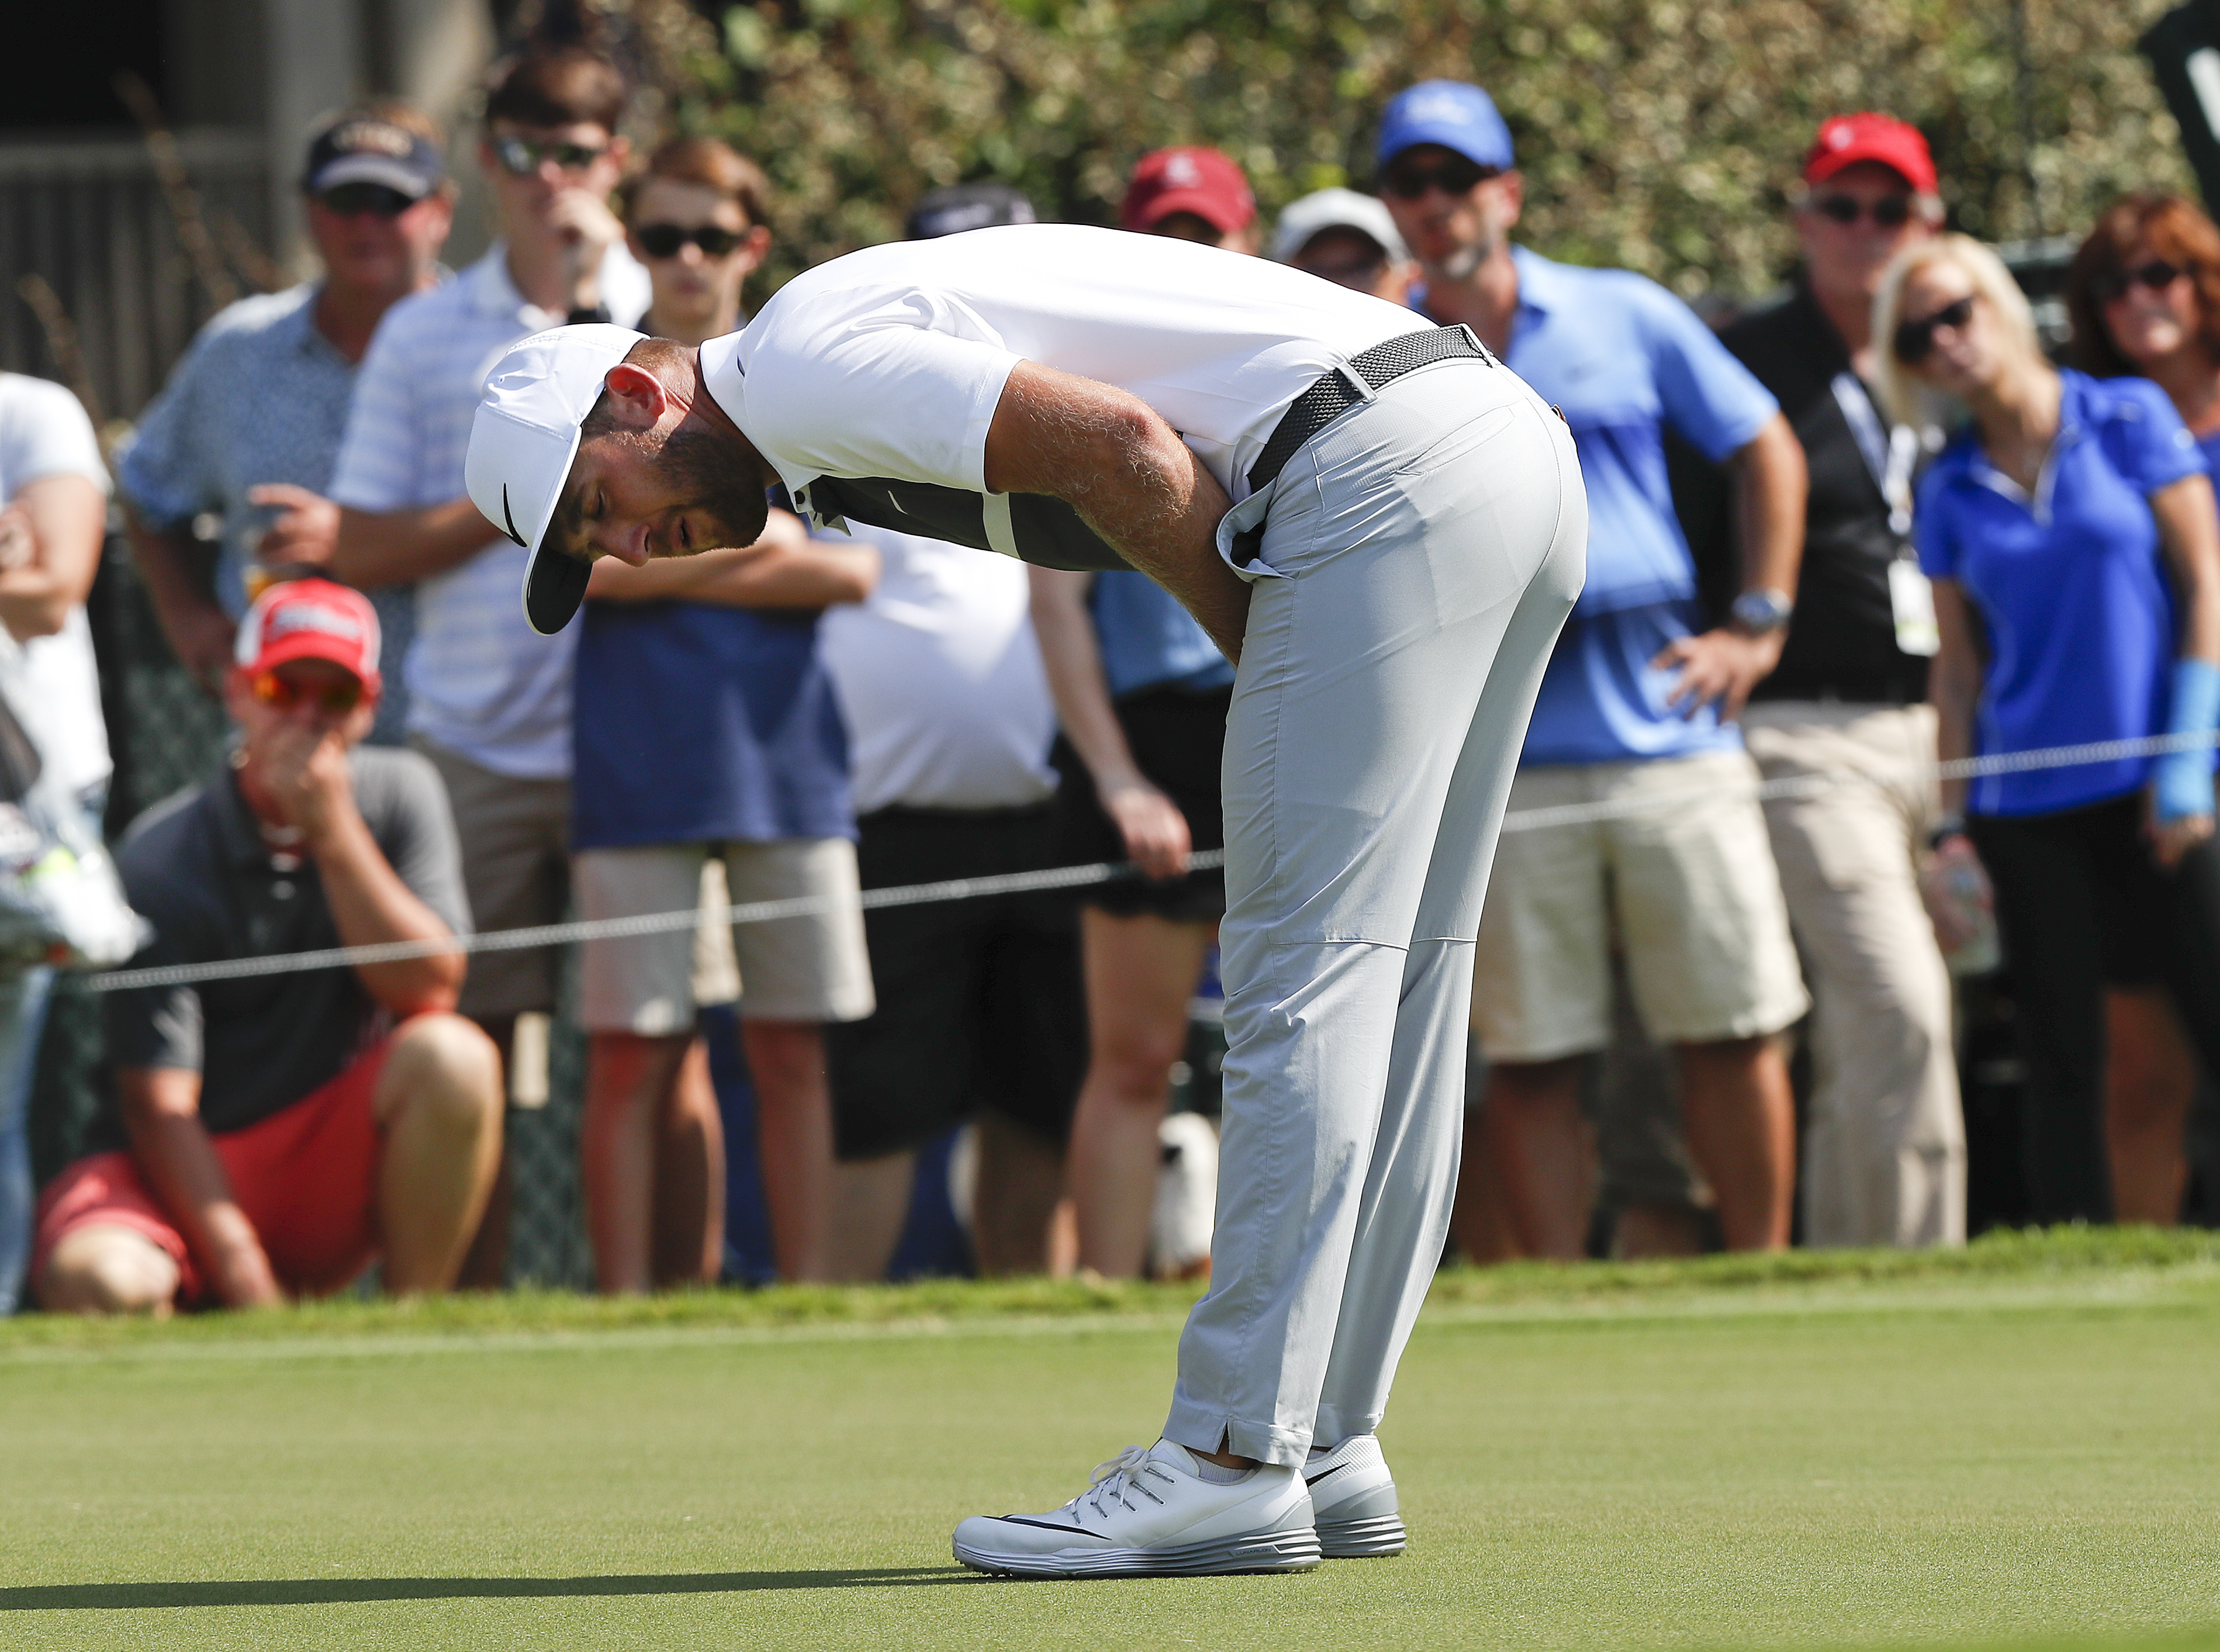 FILE - In this Sept. 25, 2016, file photo, Kevin Chappell reacts after missing a putt on the fourth hole during the final round of play at the Tour Championship golf tournament at East Lake Golf Club, in Atlanta. It's easy to think about everything that d